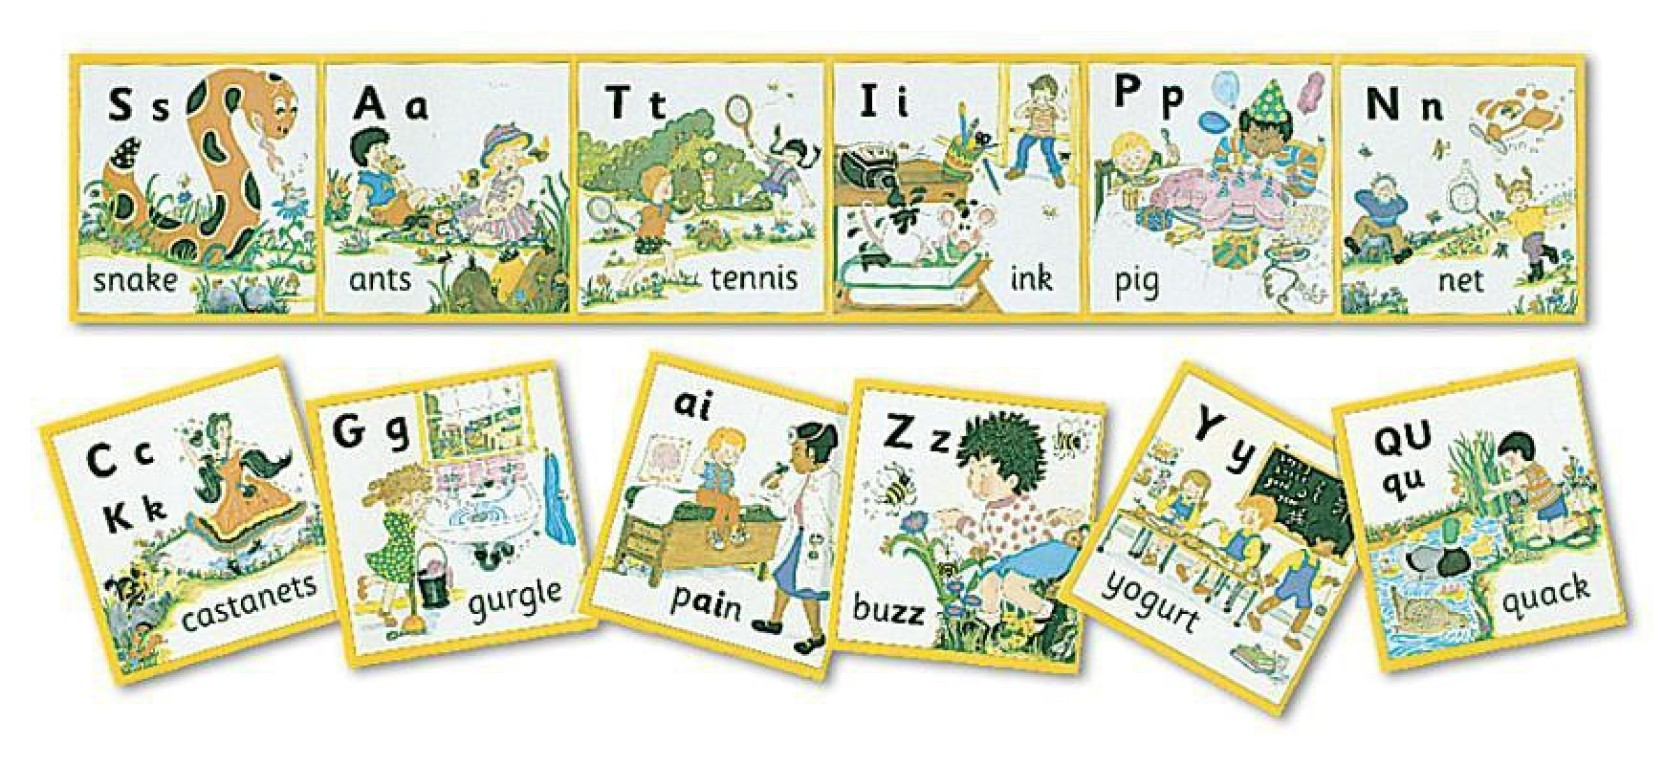 Itmdymcxsrne25qn on Alphabet Flashcards Wall Posters